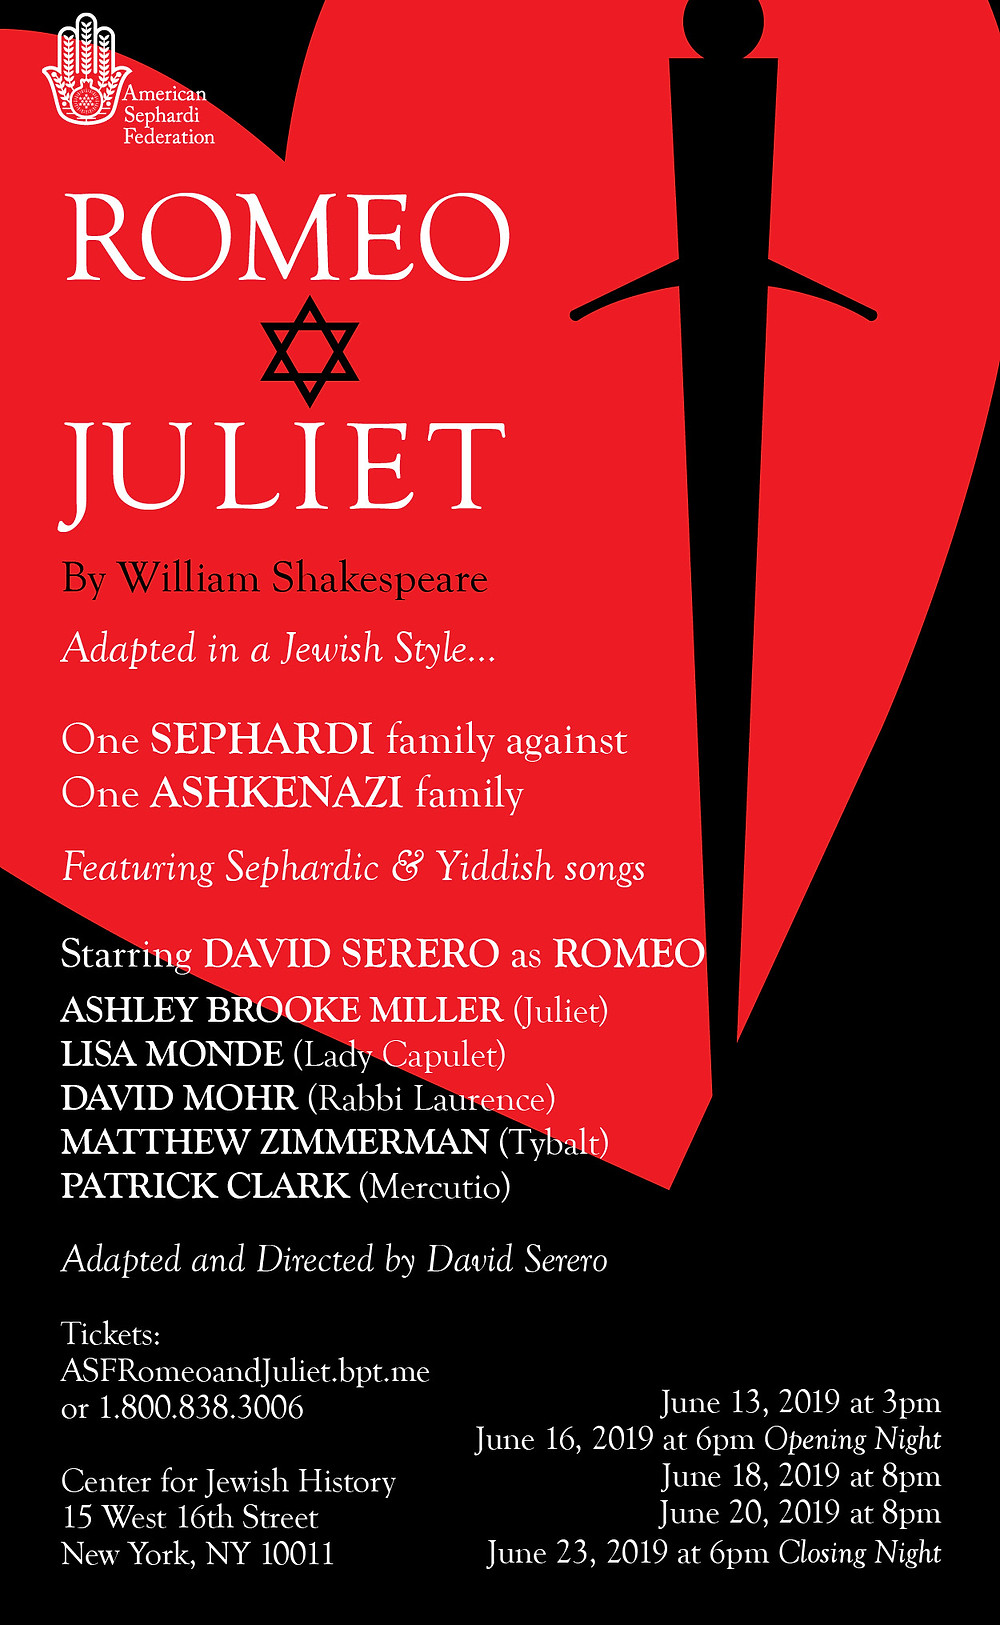 Romeo and Juliet in a Jewish Adaptation